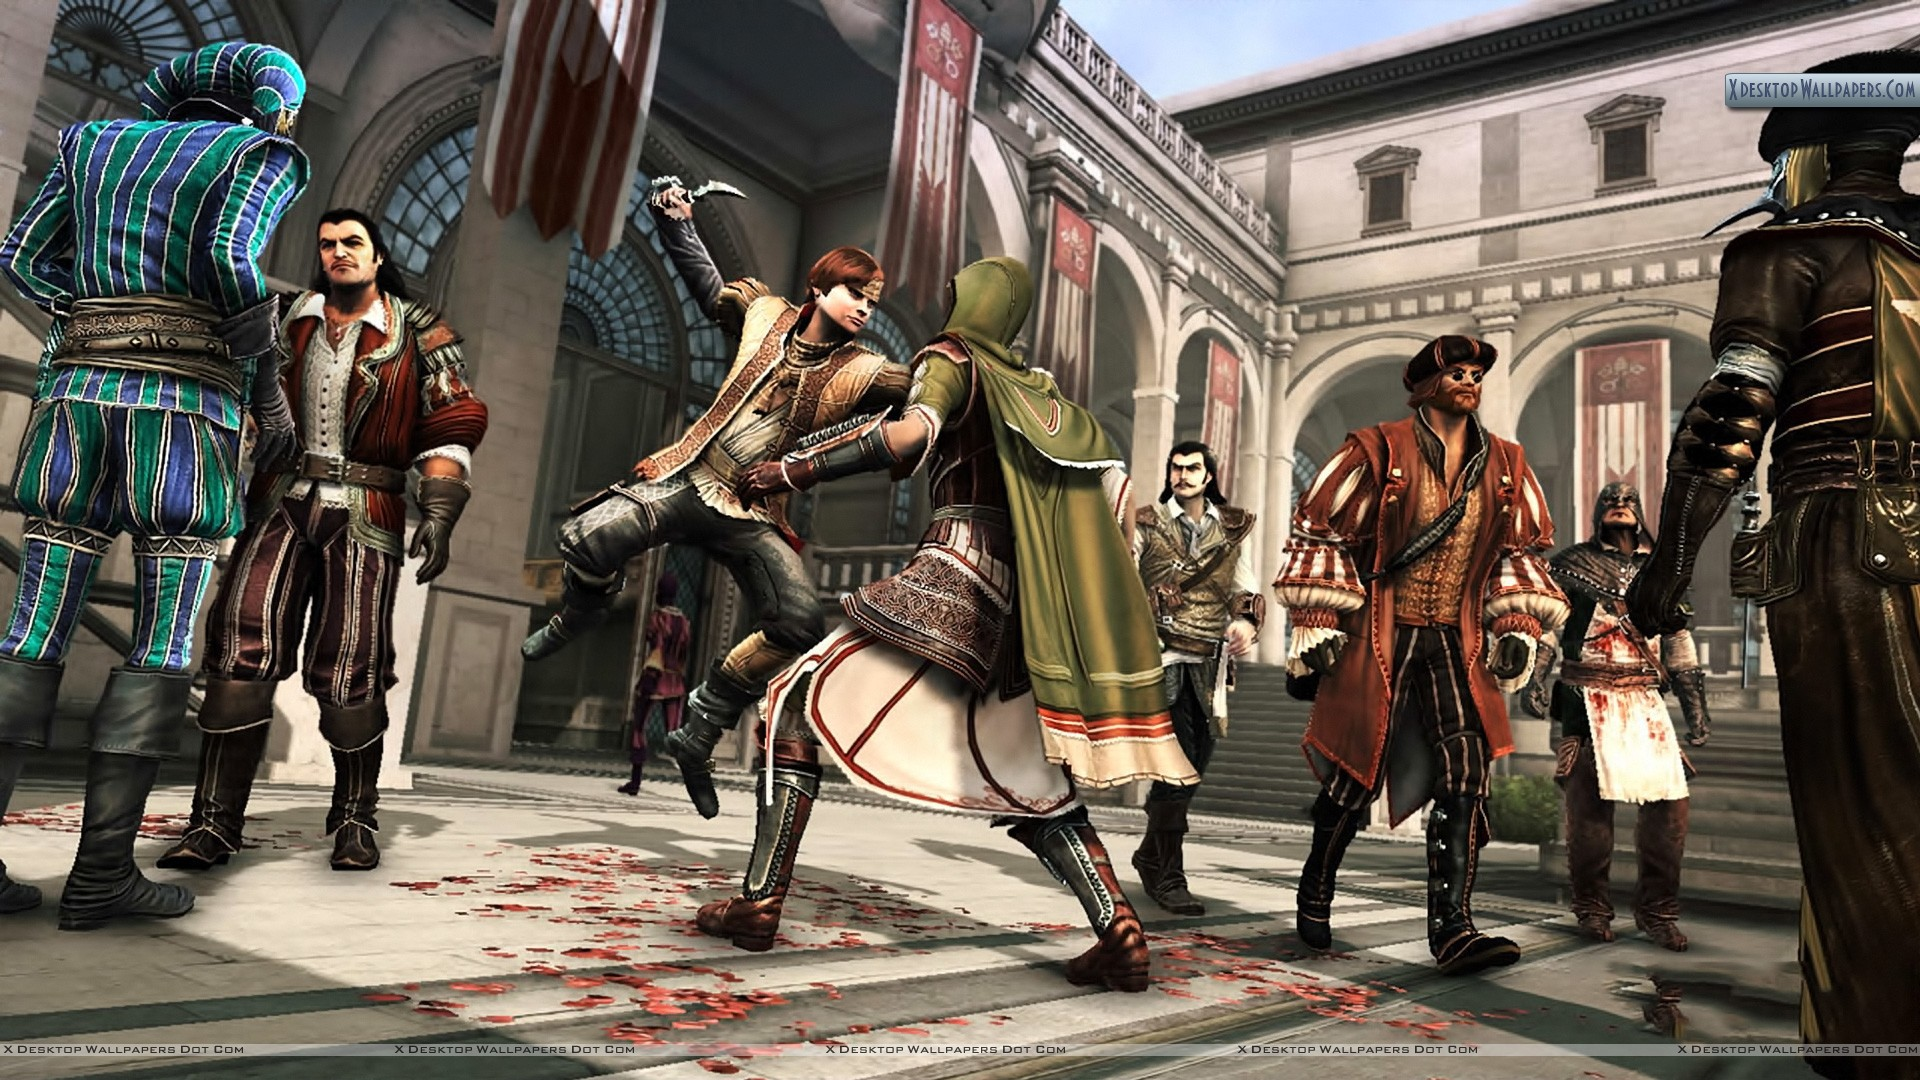 Assassins Creed Brotherhood Wallpapers Photos Images In Hd